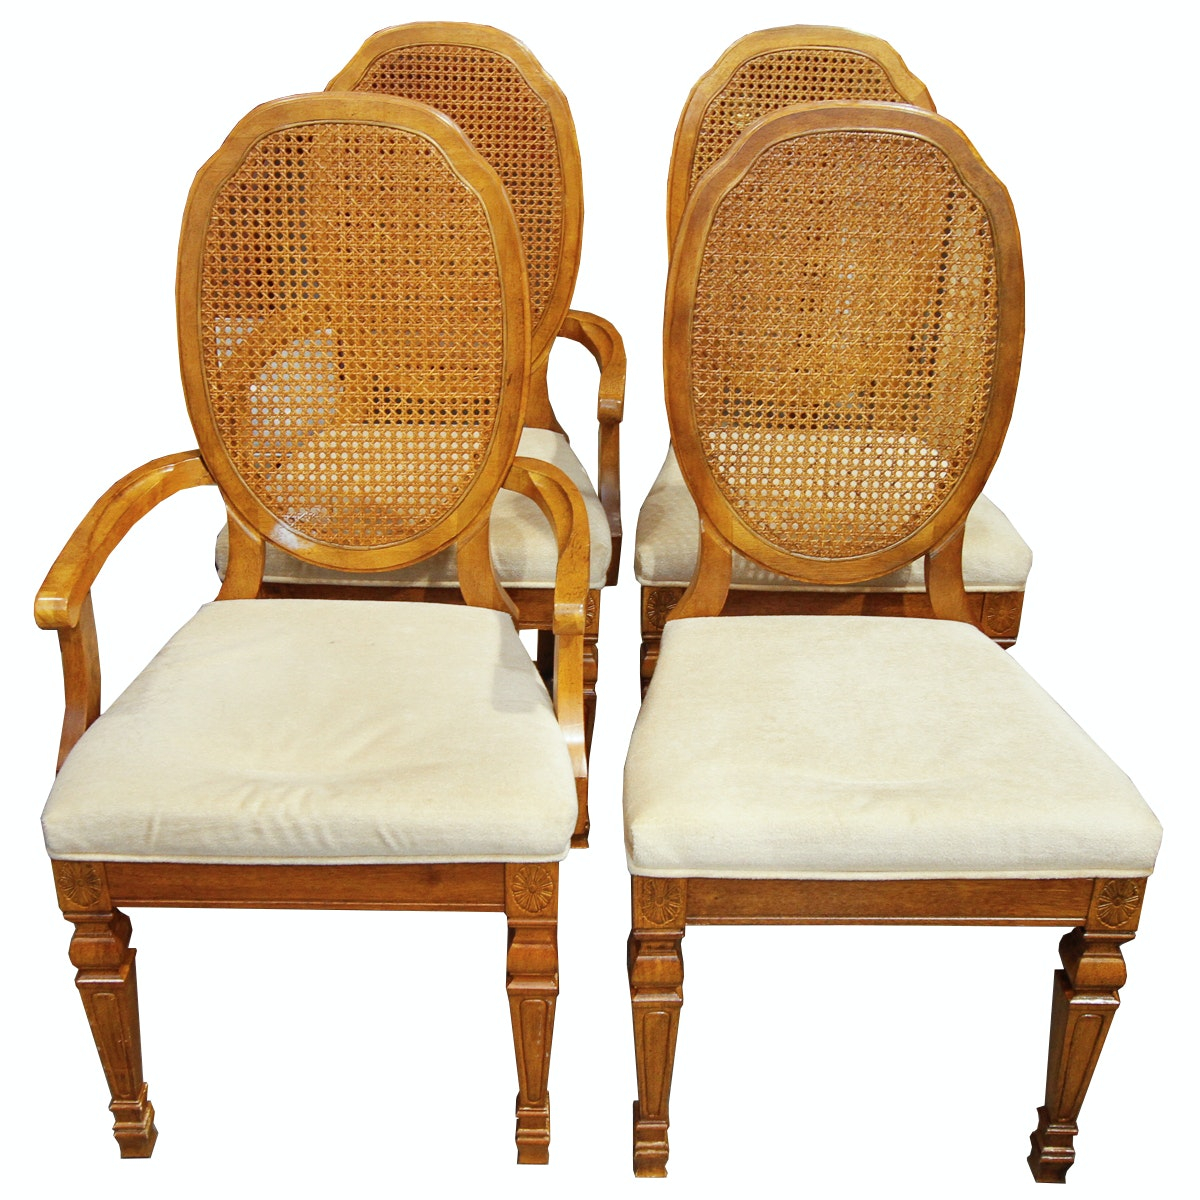 Vintage louis xvi style cane back dining chairs by bernhardt furniture ebth - Reasons choosing vintage style furniture ...